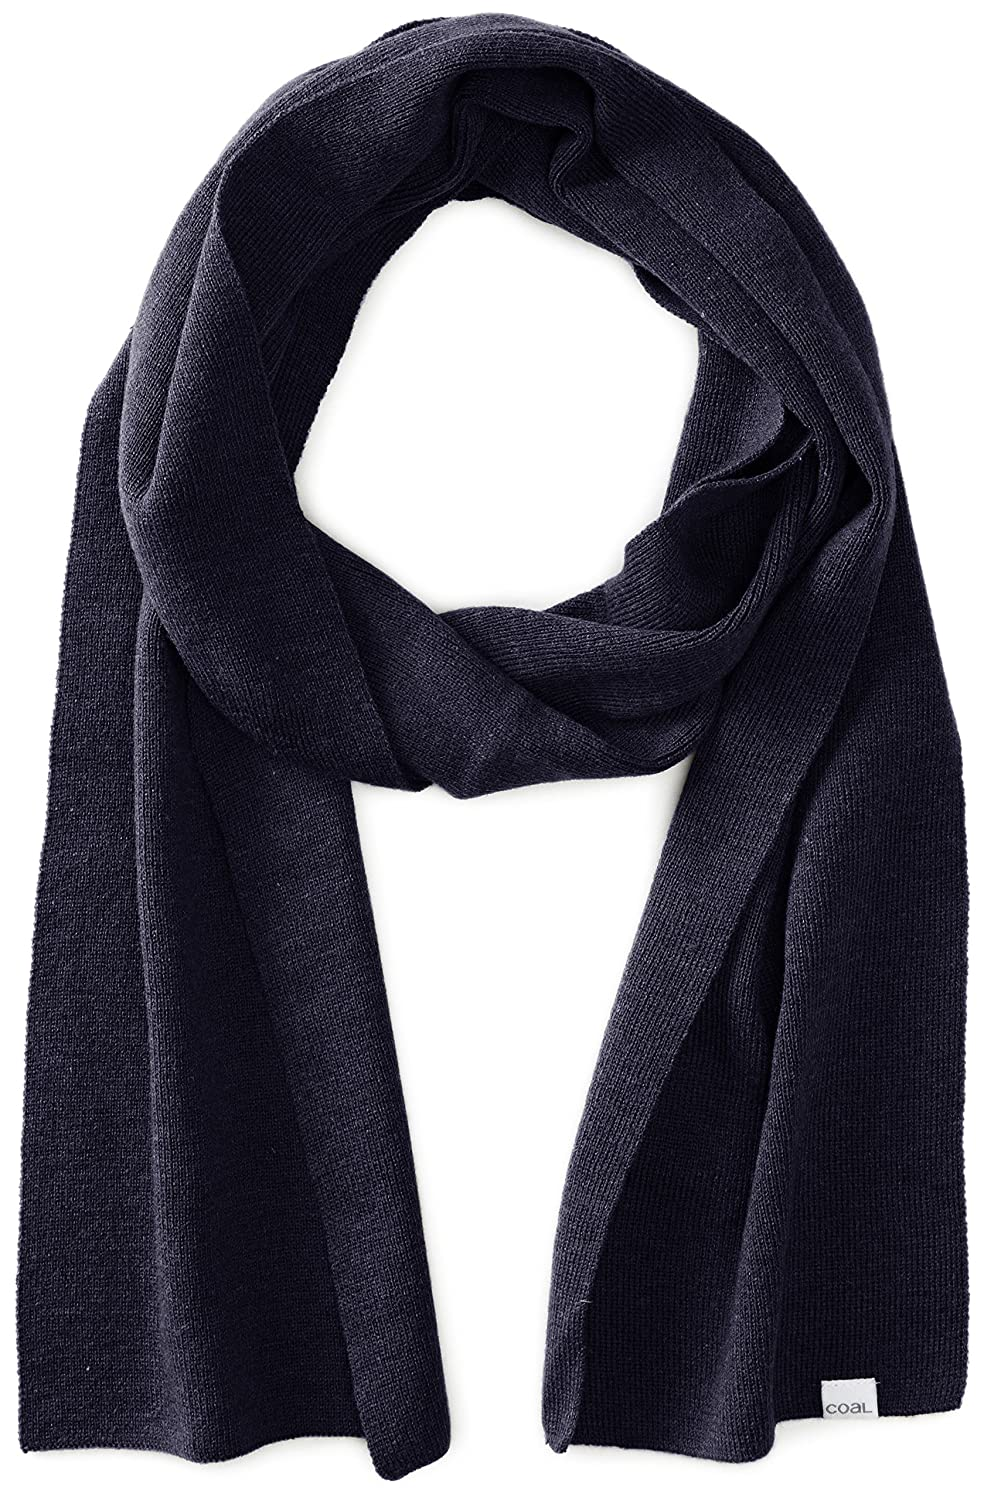 Coal Men's Jakob Fine-Gauge Knit Scarf Coal Young Men's 209002